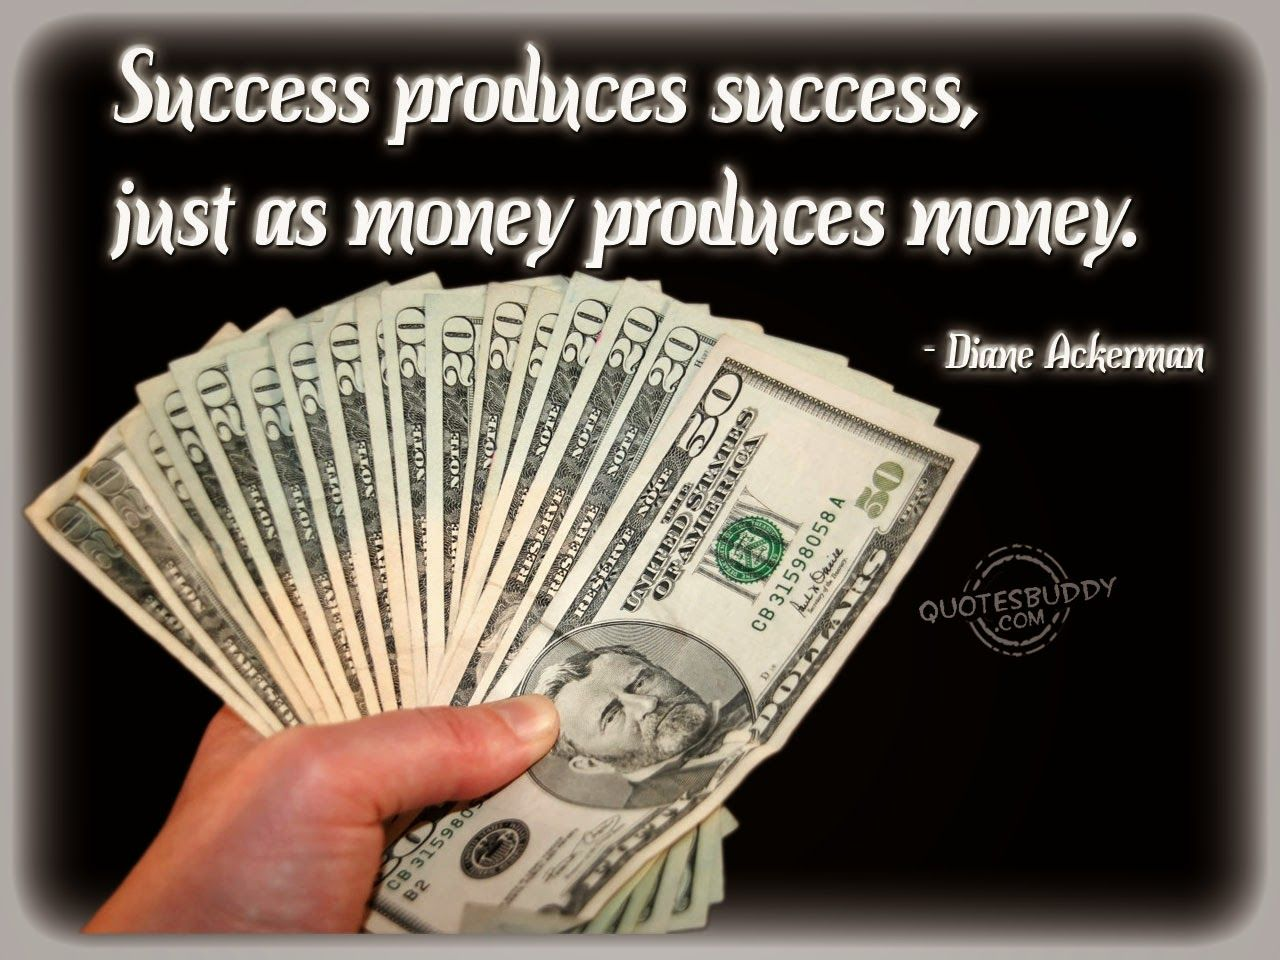 Make money for yourself not someone else. rogeralberty.com